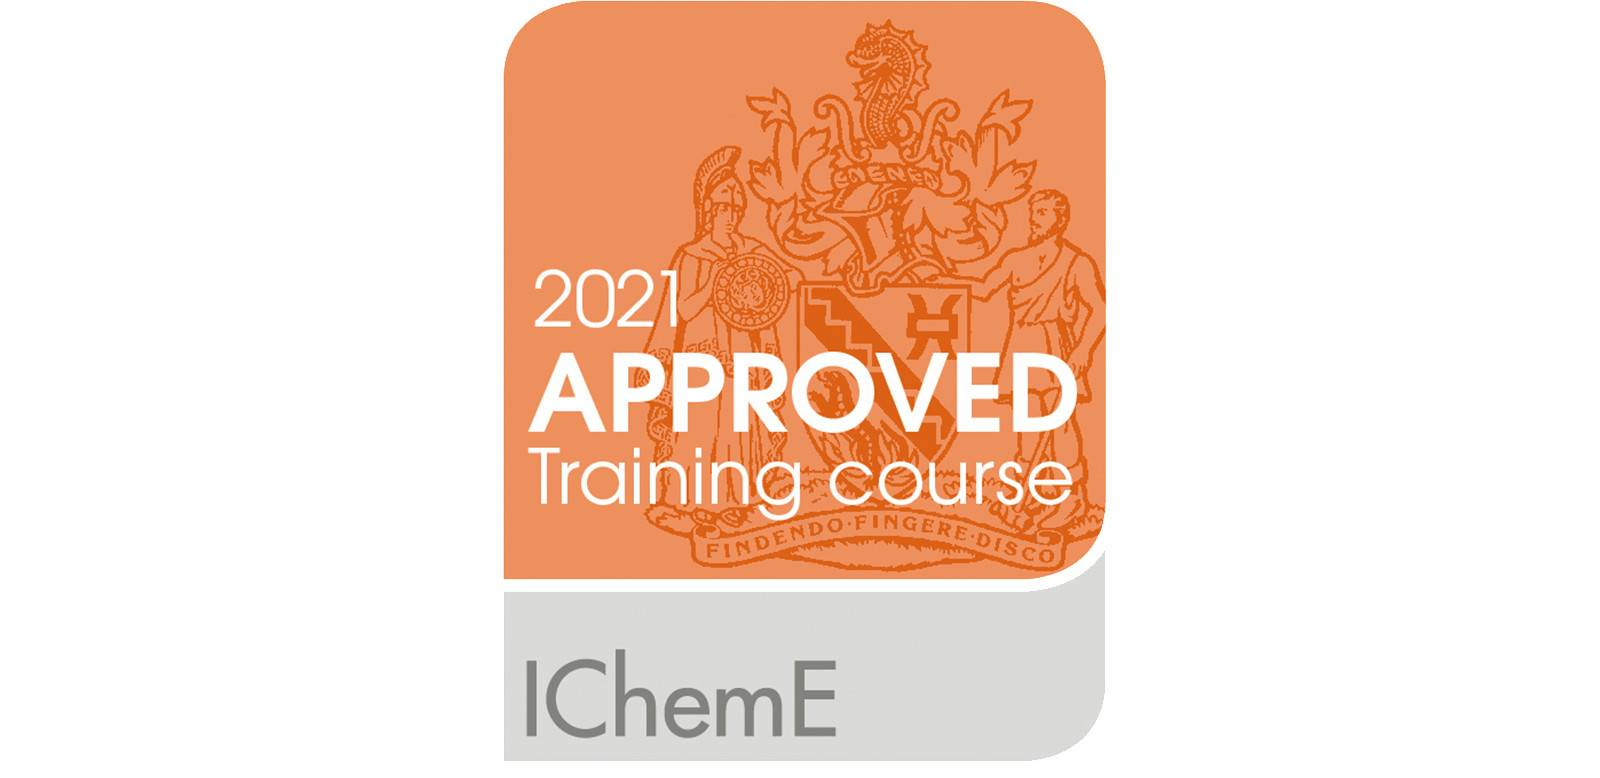 IChemE, 2021 approved training course